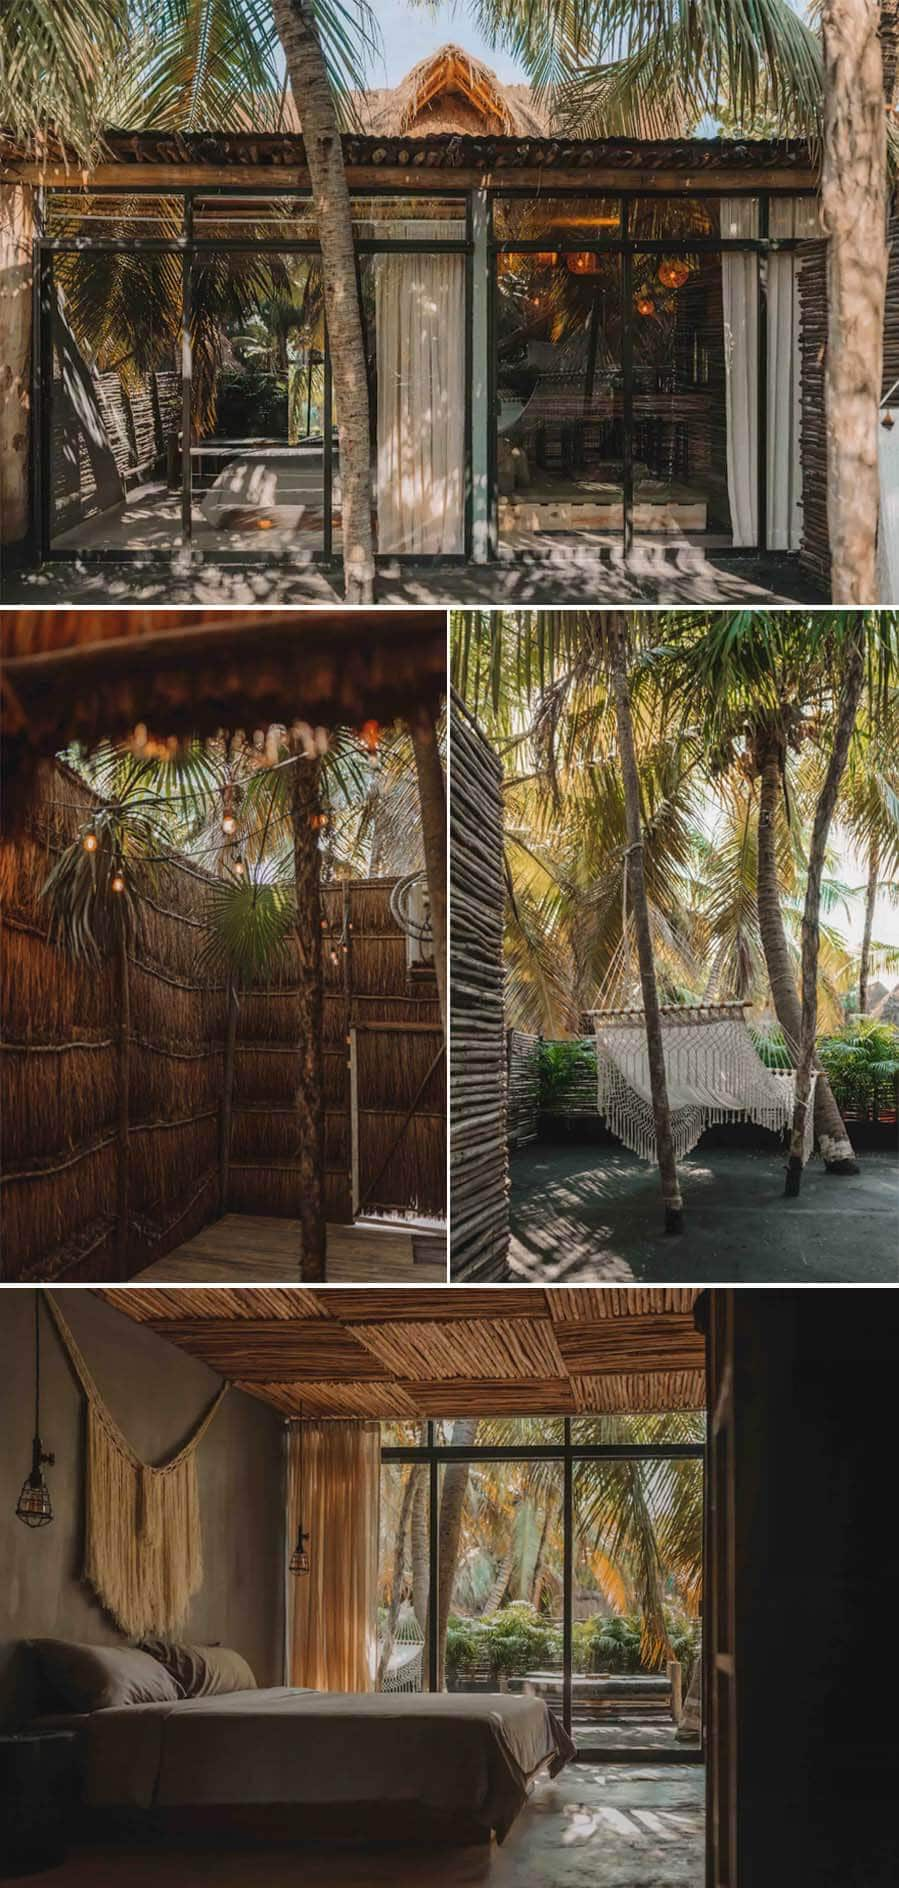 Best Airbnbs in Tulum - jungle vibes home rental